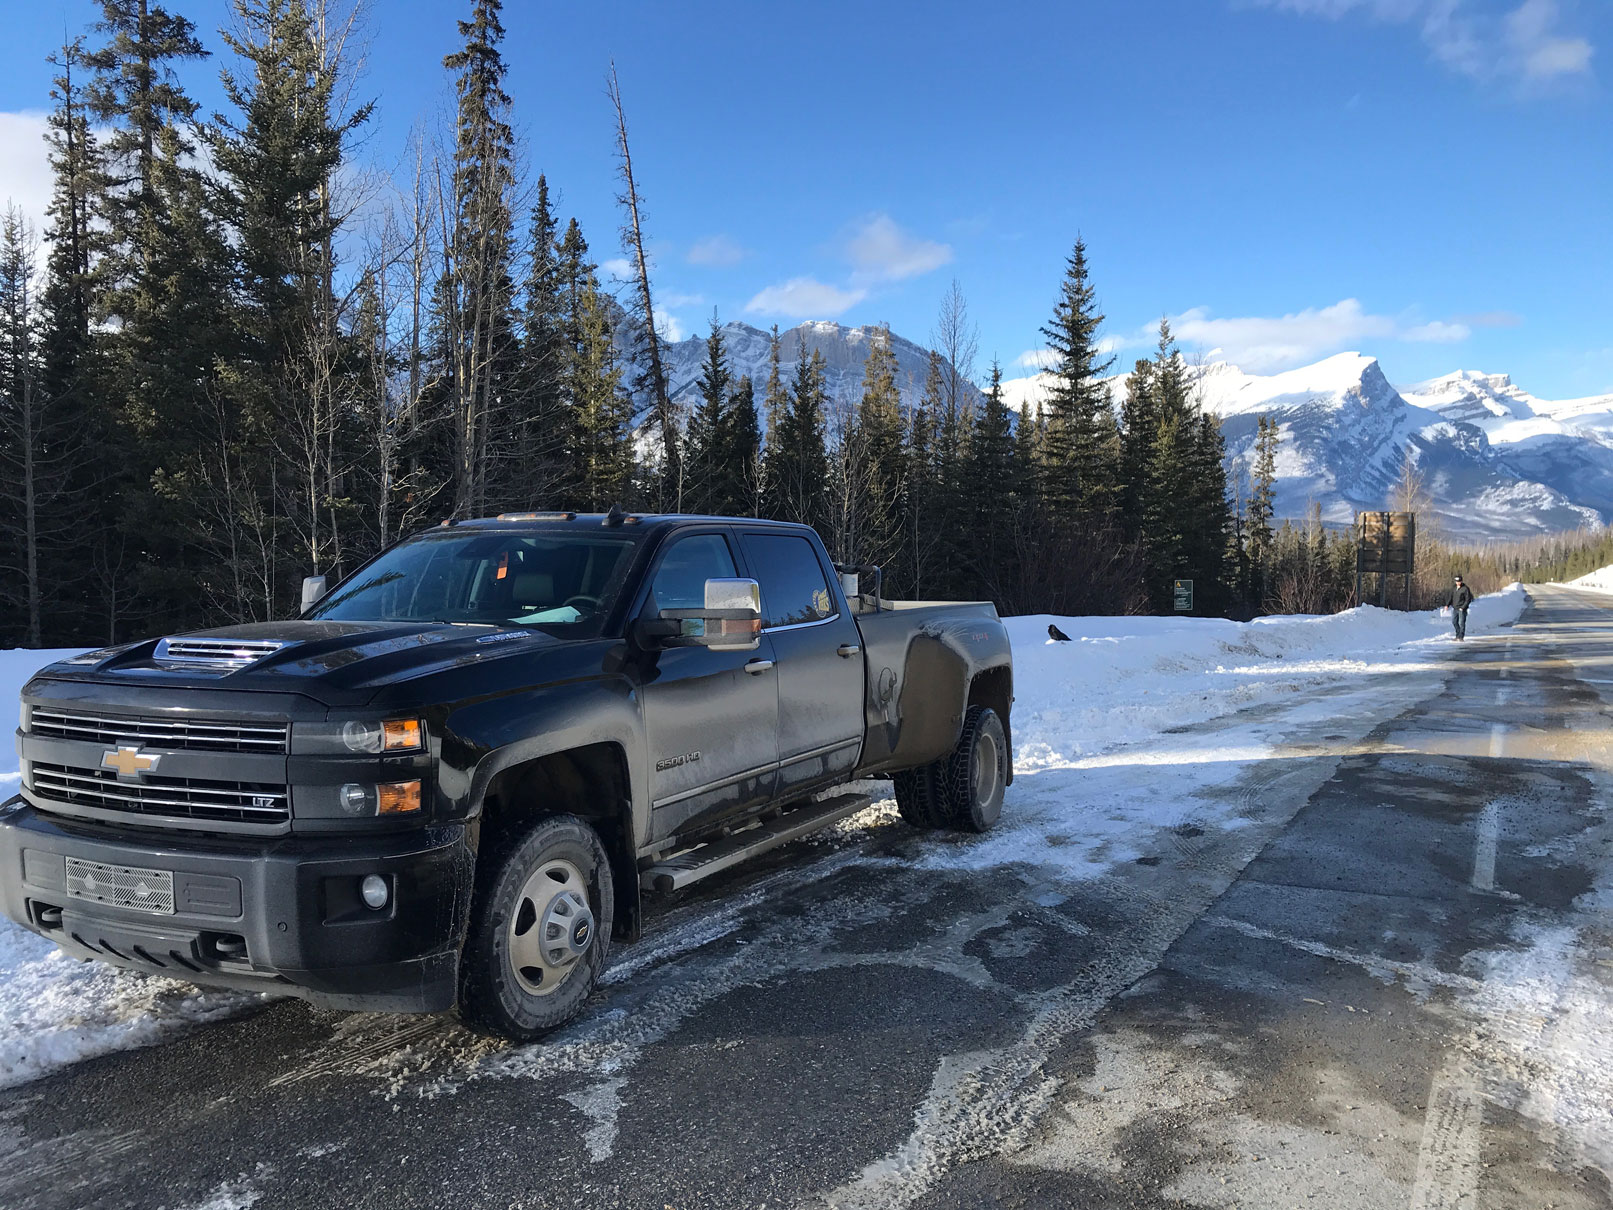 Rubydale Truck during asphalt paving job in Banff National Park near Mistaya Canyon